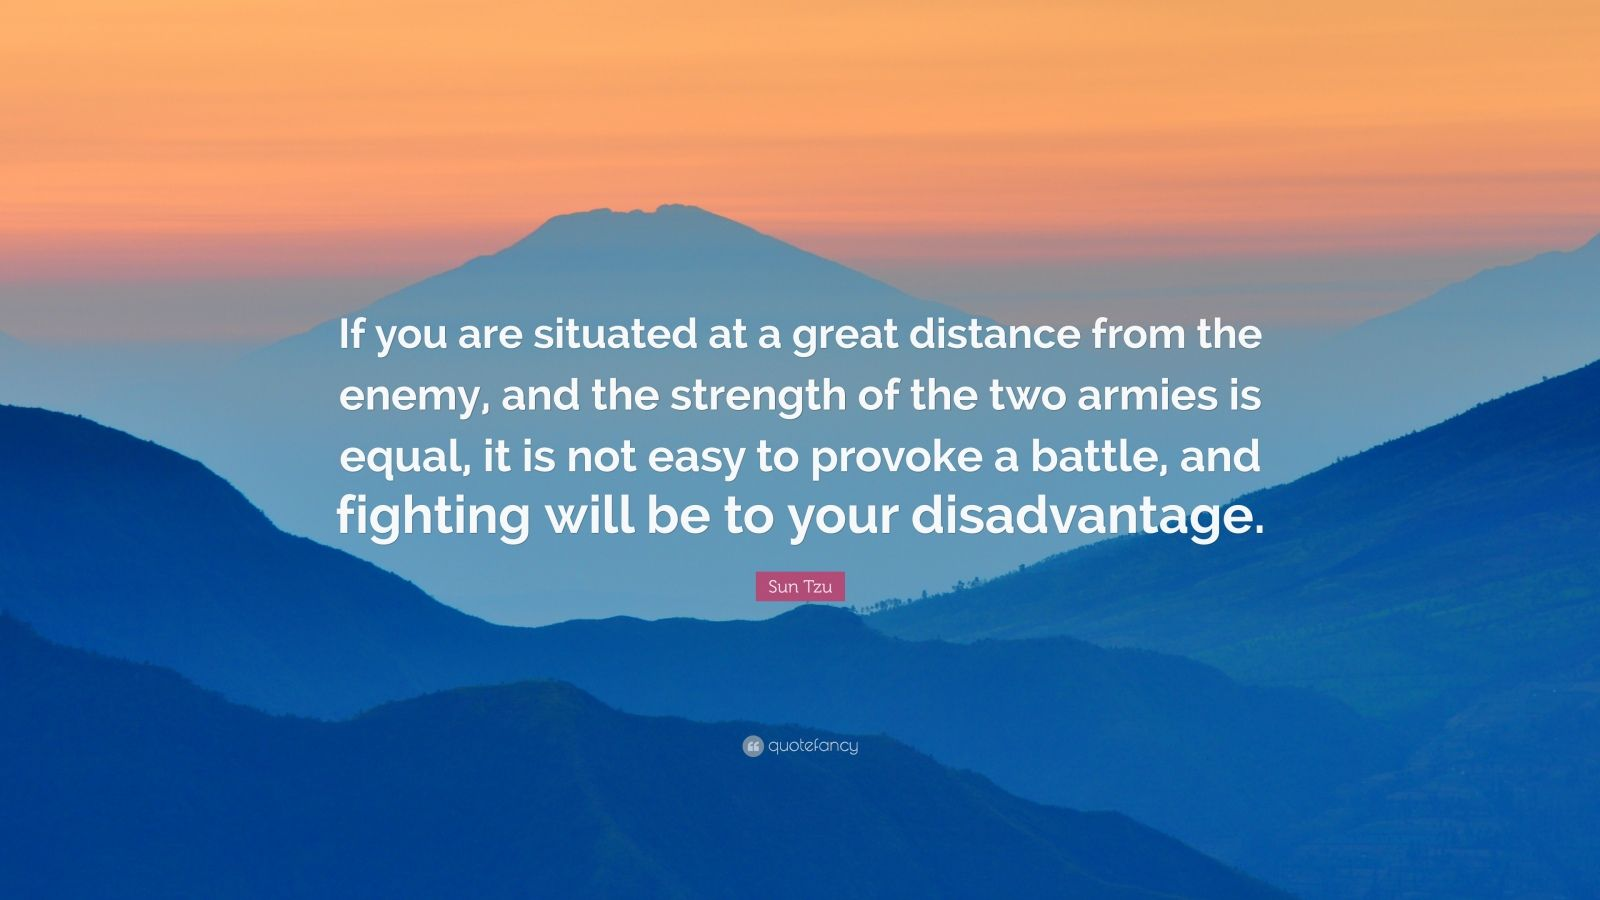 """Sun Tzu Quote: """"If you are situated at a great distance from the enemy, and the strength of the two armies is equal, it is not easy to provoke a battle, and fighting will be to your disadvantage."""""""